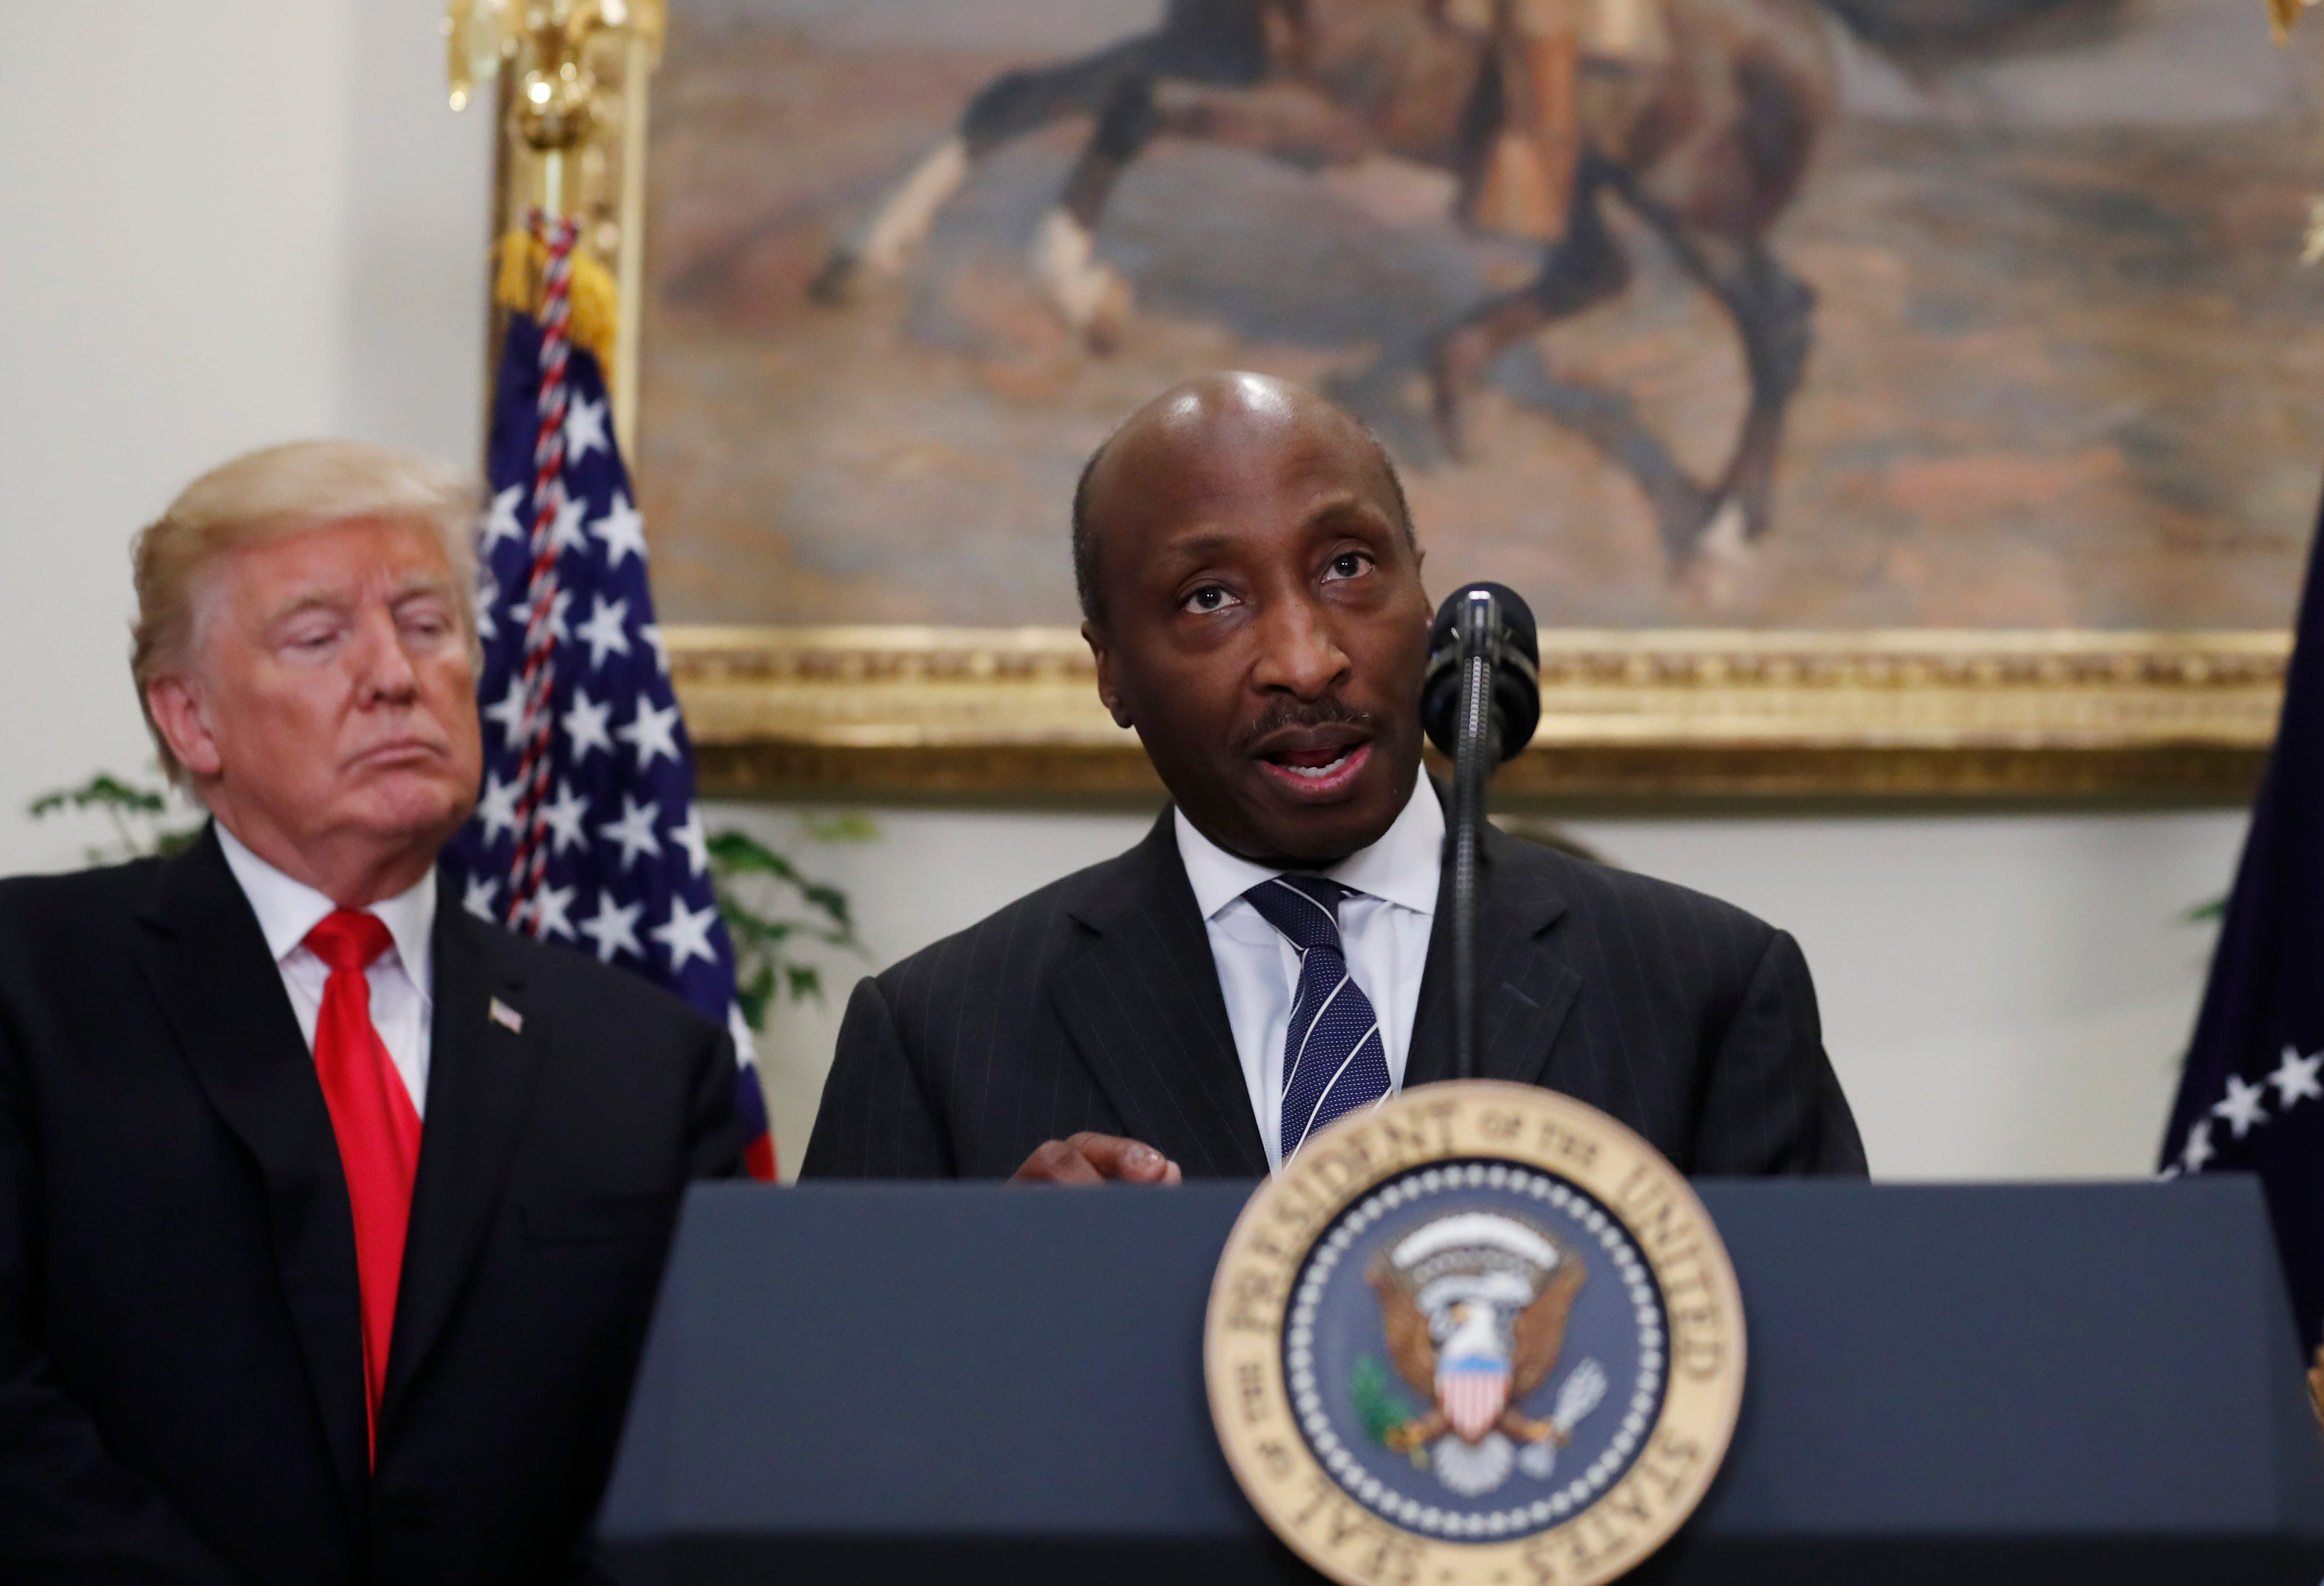 Coalition of 37 CEOs says it will hire 1 million Black Americans over 10 years